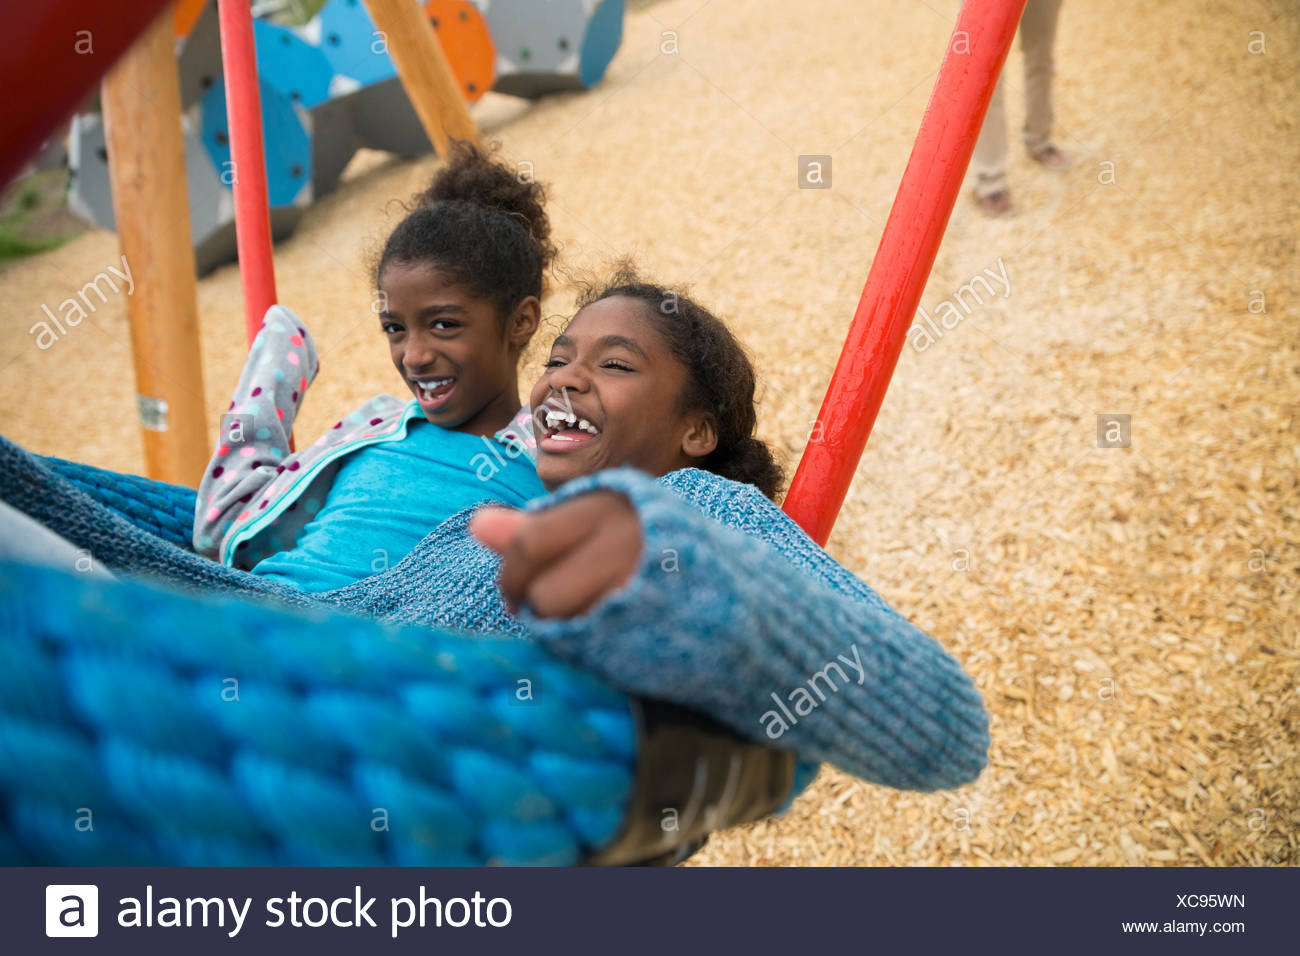 Carefree sisters swinging at playground - Stock Image